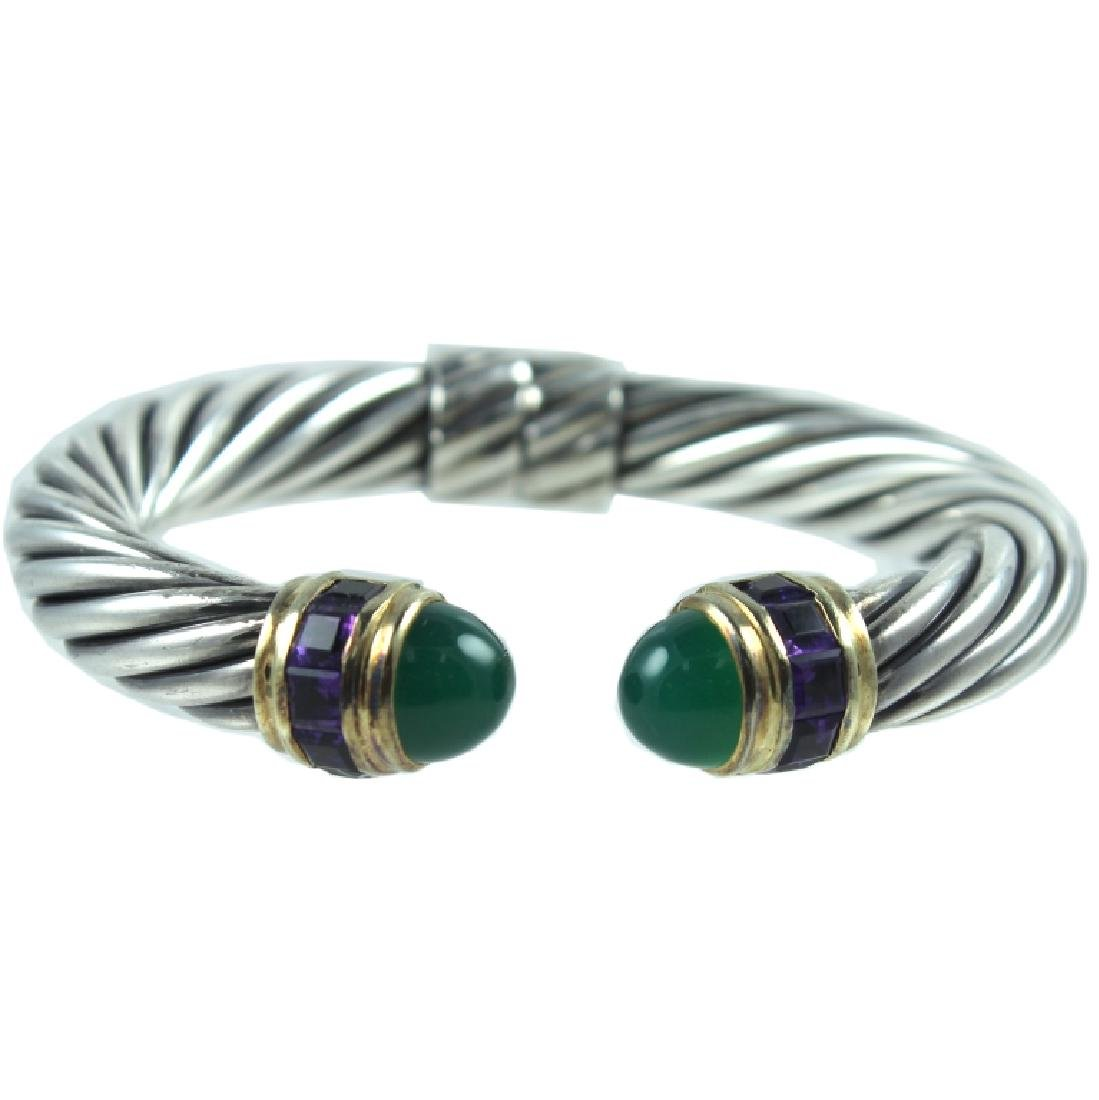 David Yurman Hinged Cuff Bracelet.